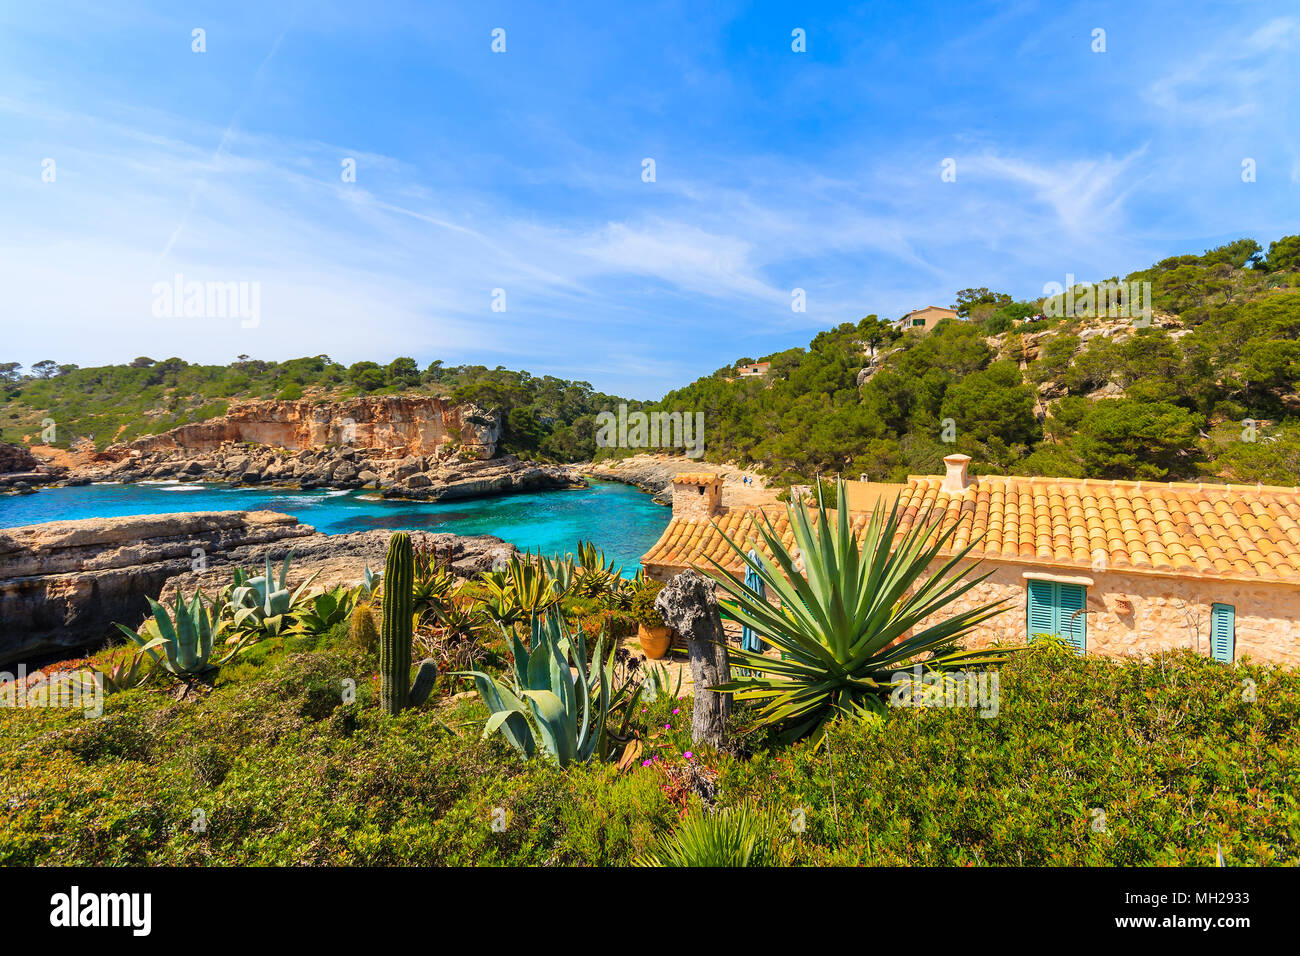 Tropical agave plants growing on rocks in beautiful bay with beach, Cala S'Almunia, Majorca island, Spain - Stock Image